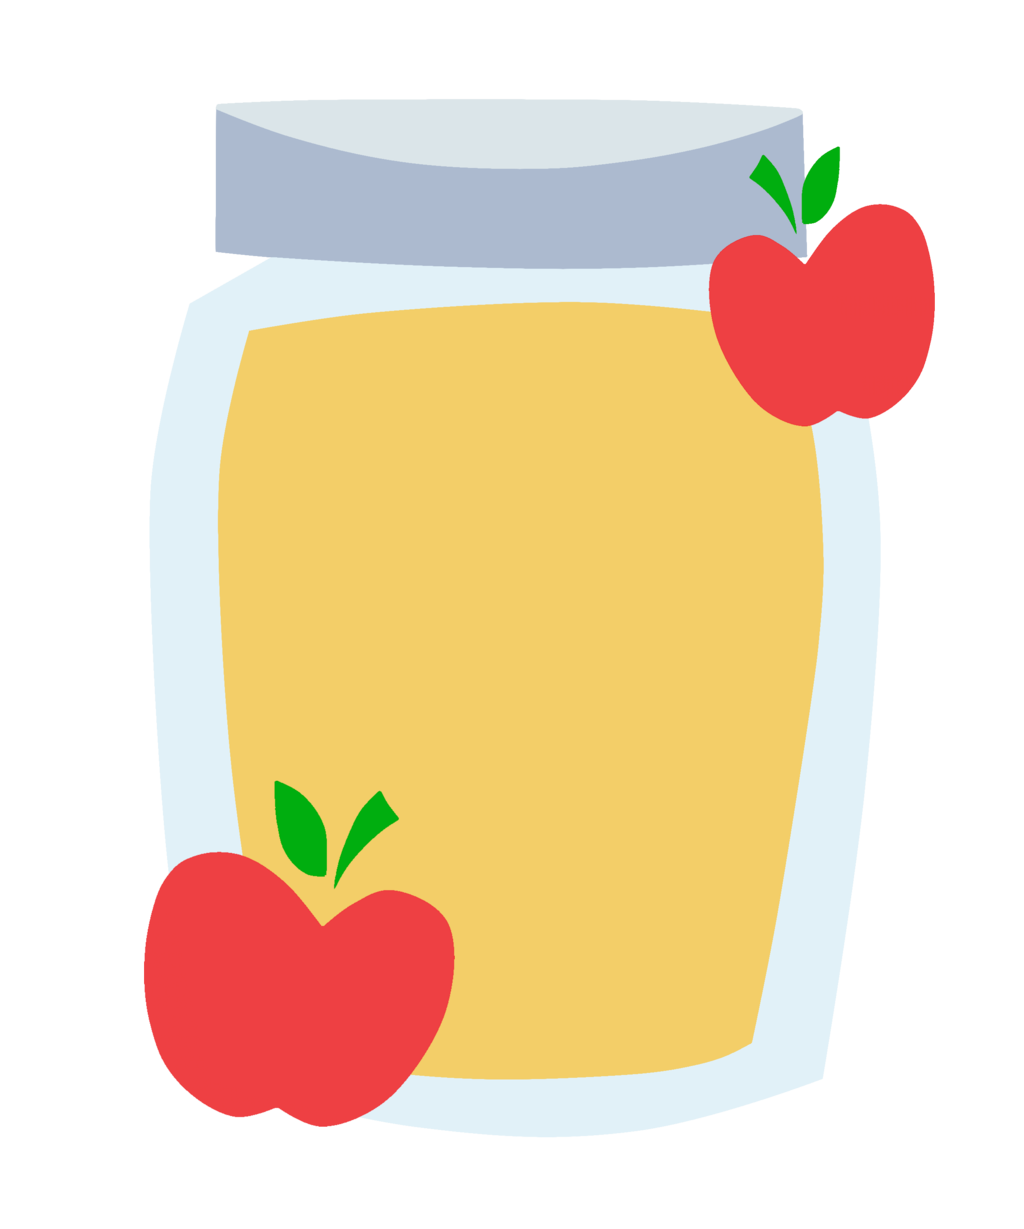 vector library stock Apple s cutie mark. Apples and honey clipart